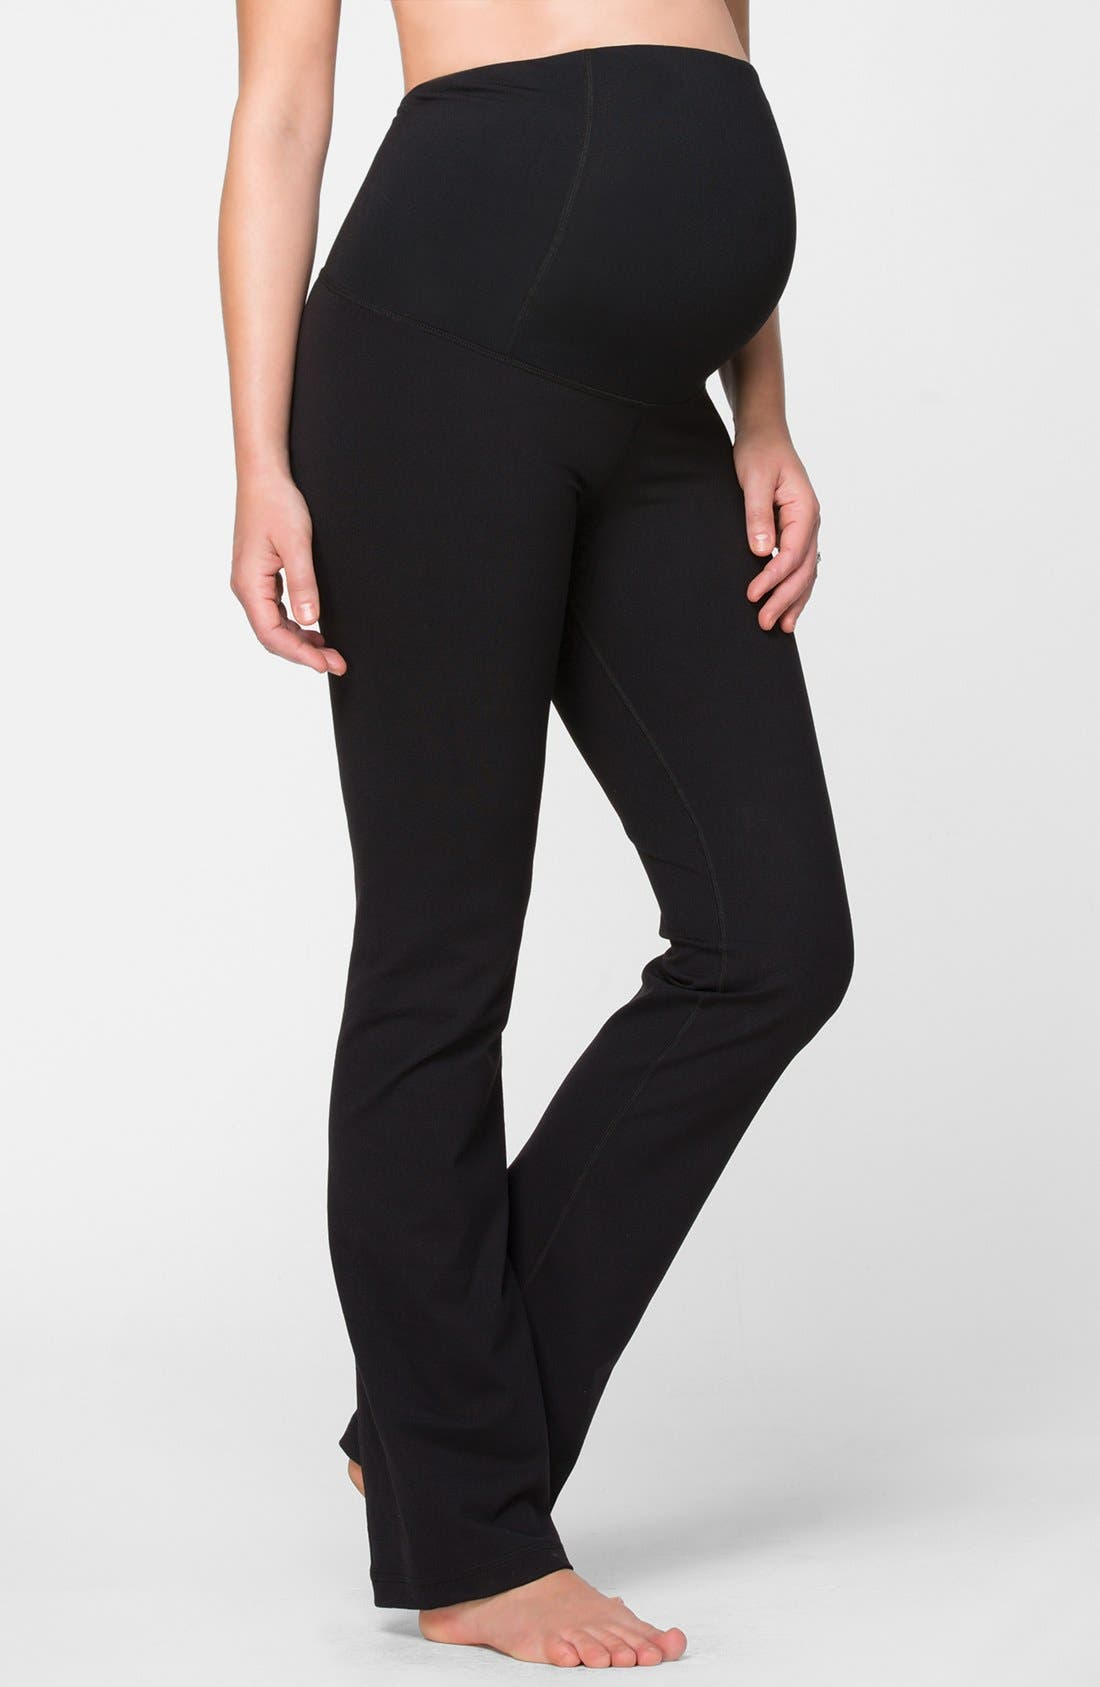 INGRID & ISABEL® Active Maternity Pants with Crossover